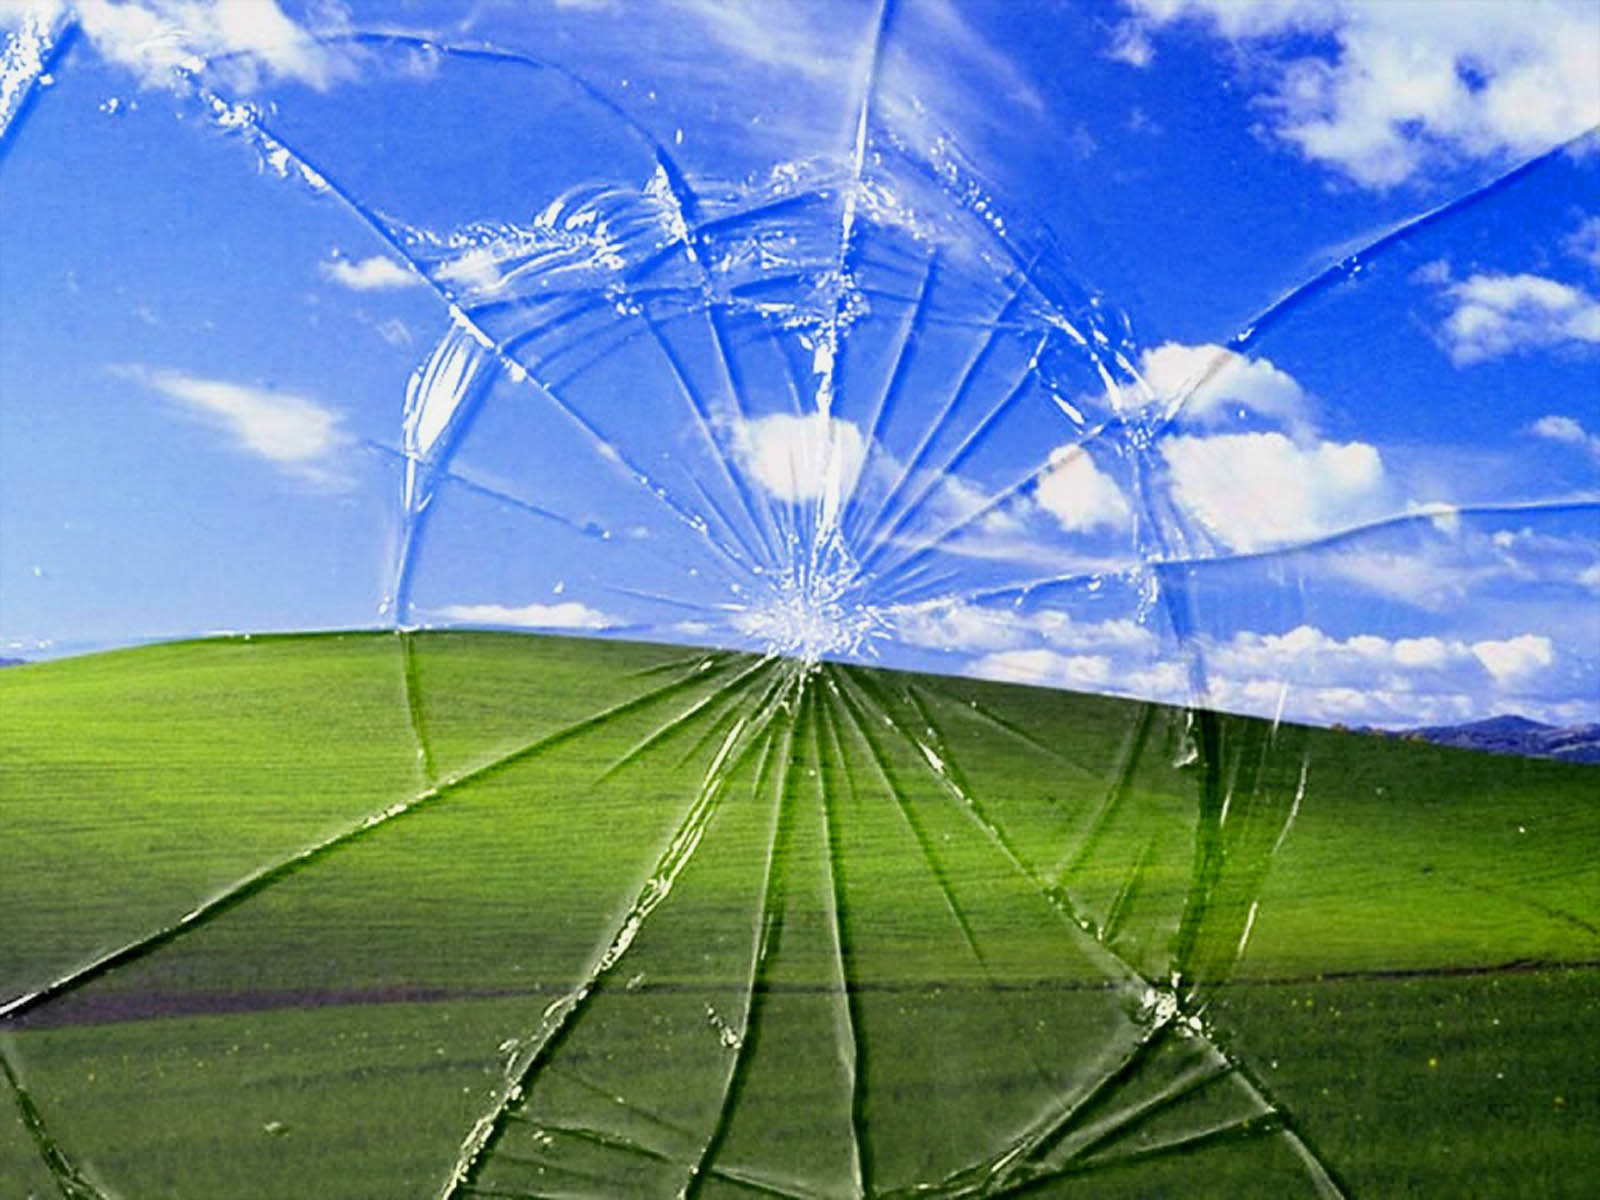 Broken Glass Wallpaper - Android Apps on Google Play